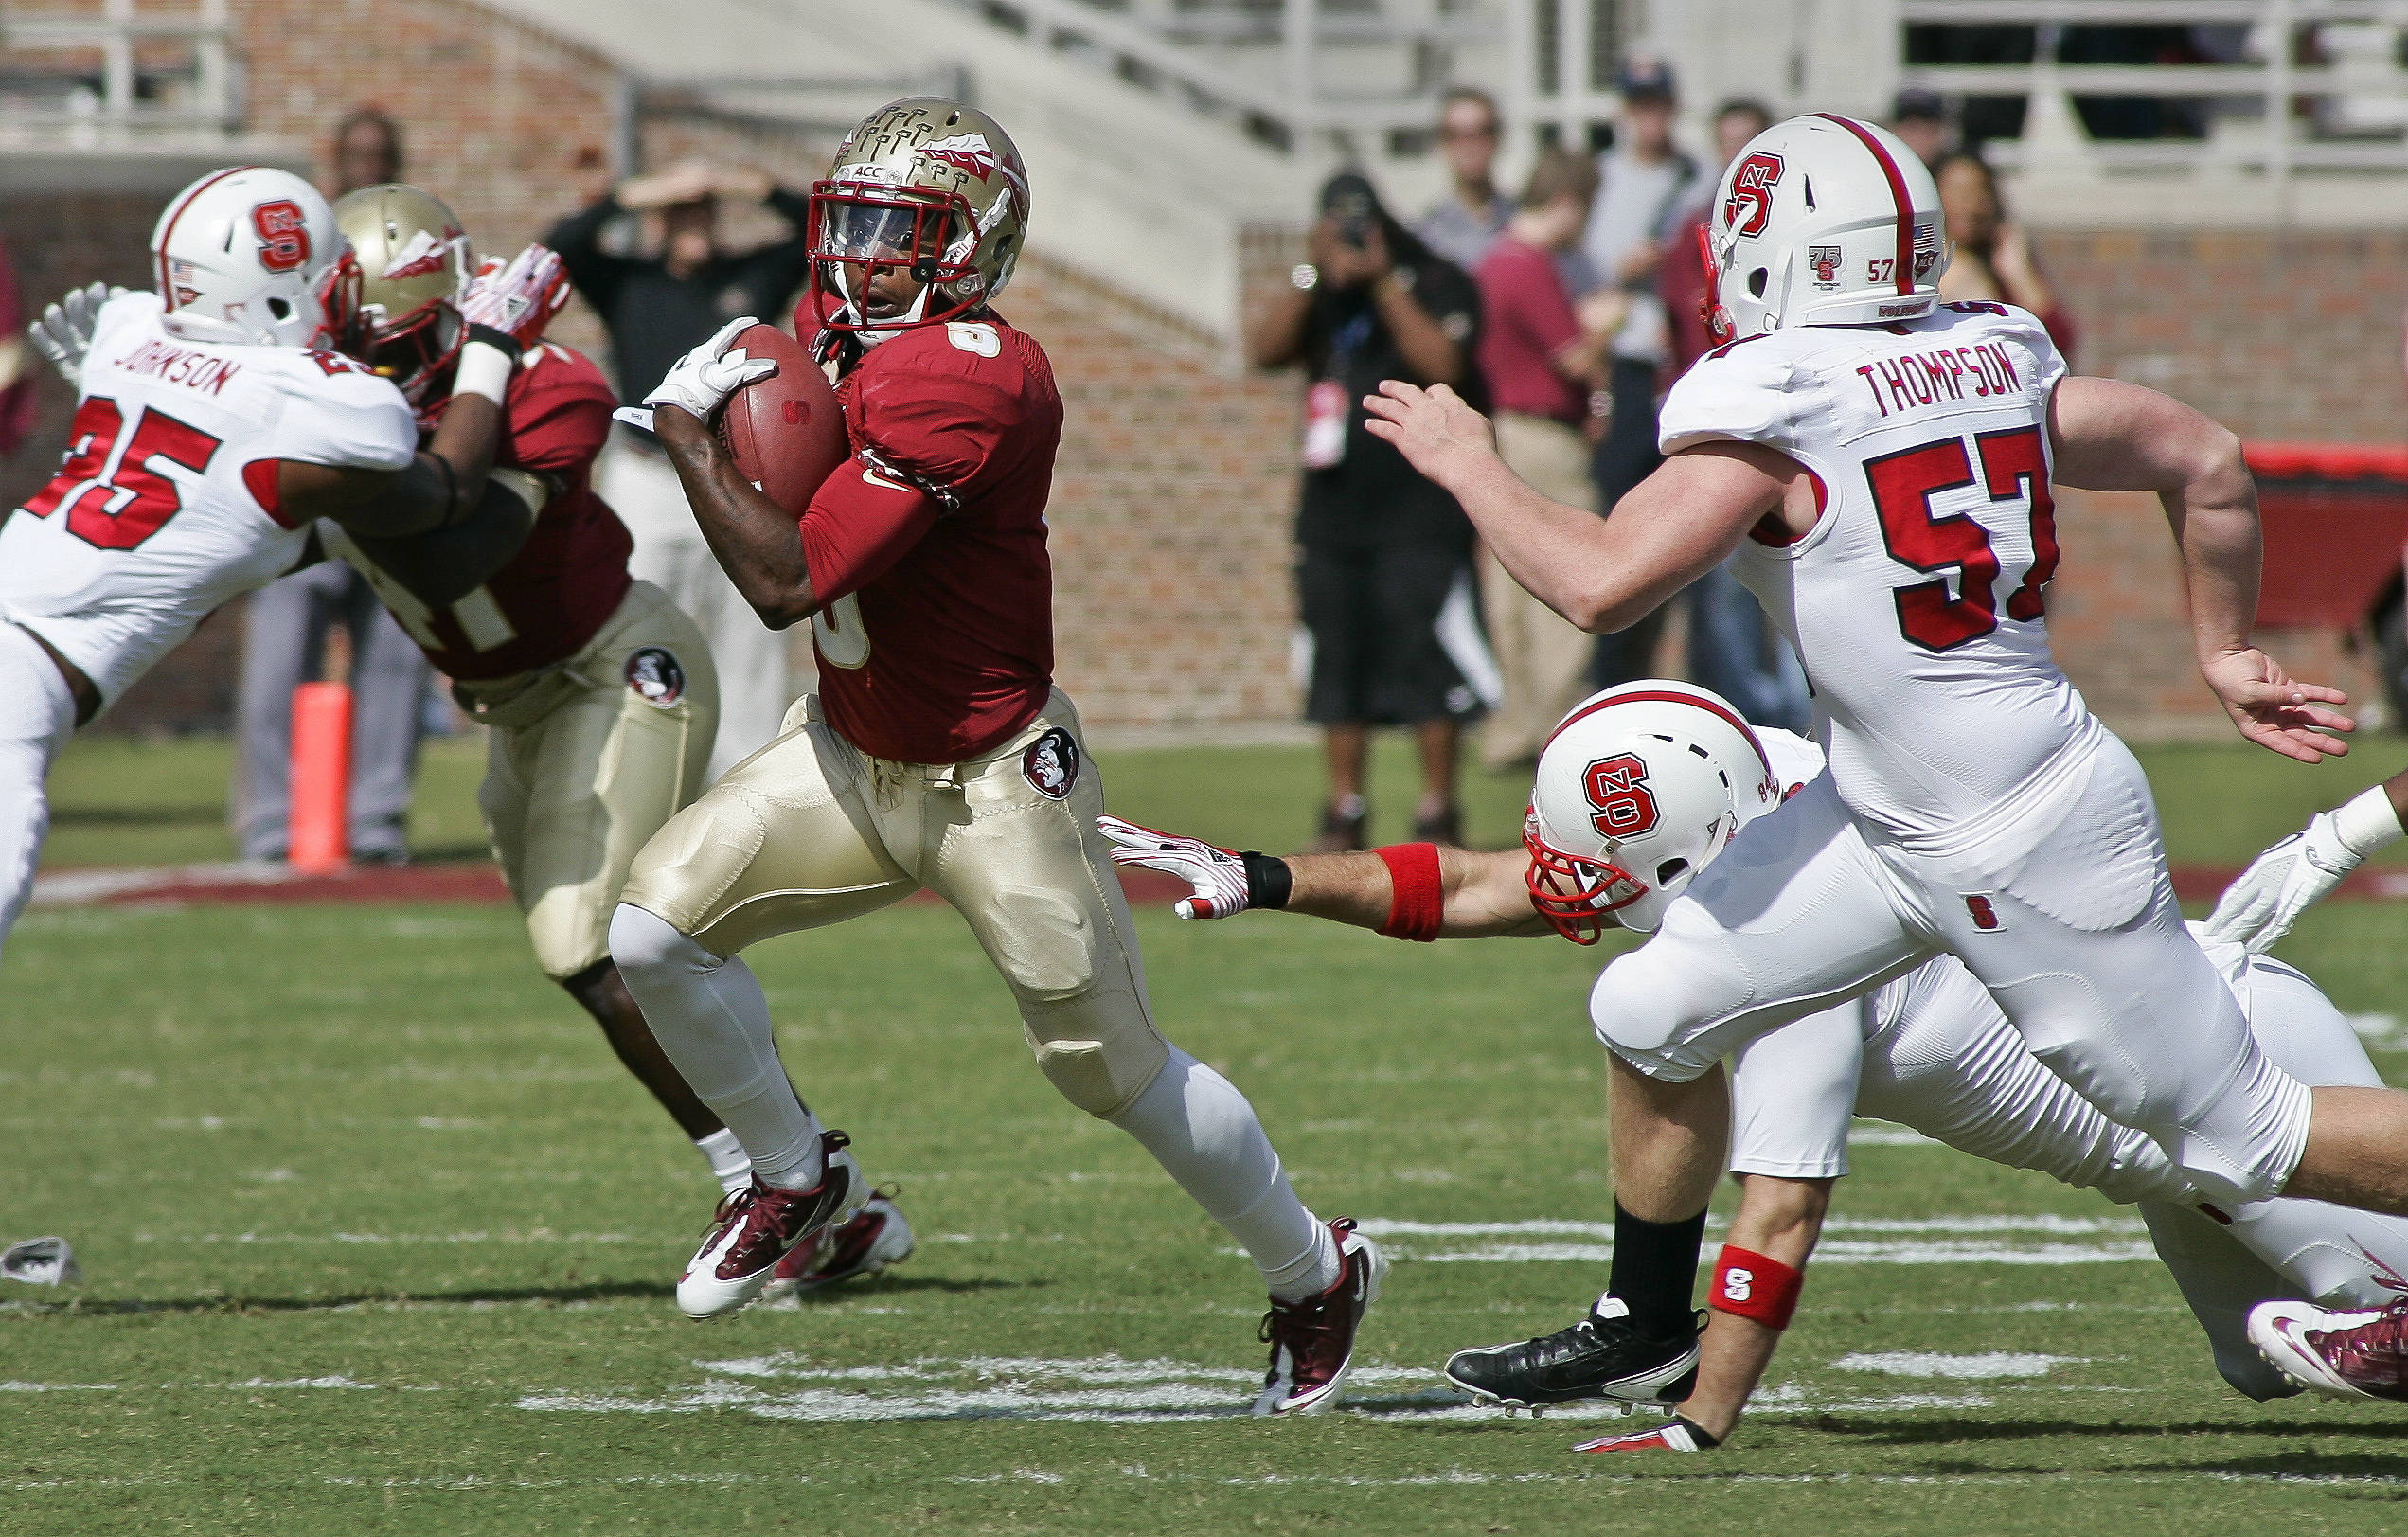 Florida State punt returner Greg Reid (5) carries the ball for a 28-yard return in the first quarter against North Carolina State. (AP Photo/Phil Sears)